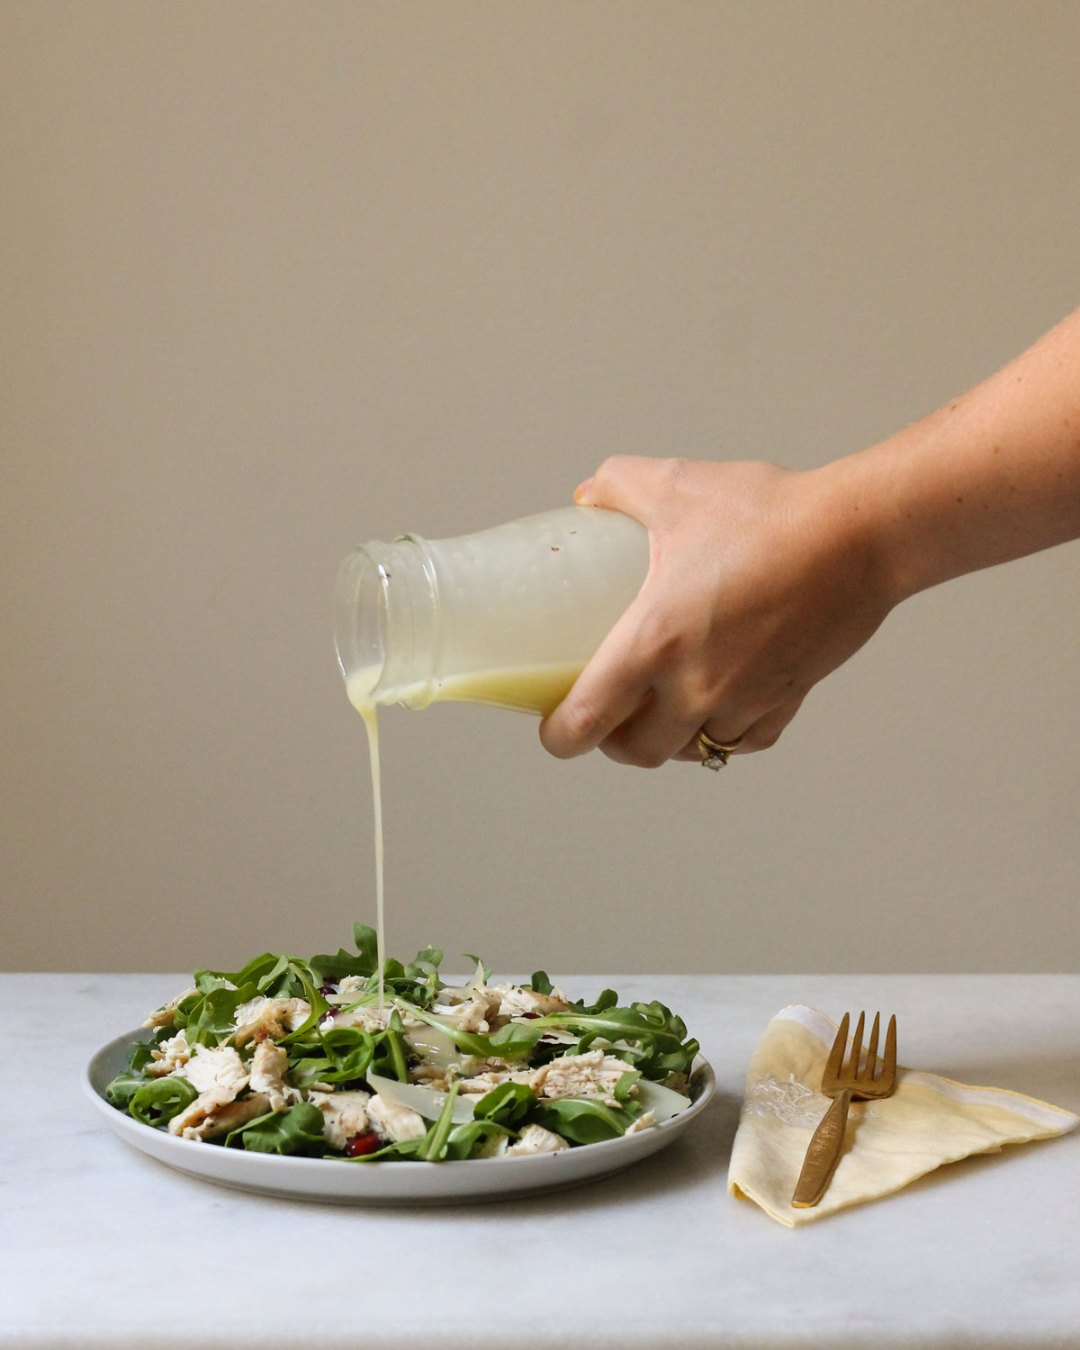 Lemon vinaigrette dressing being poured onto an arugula salad